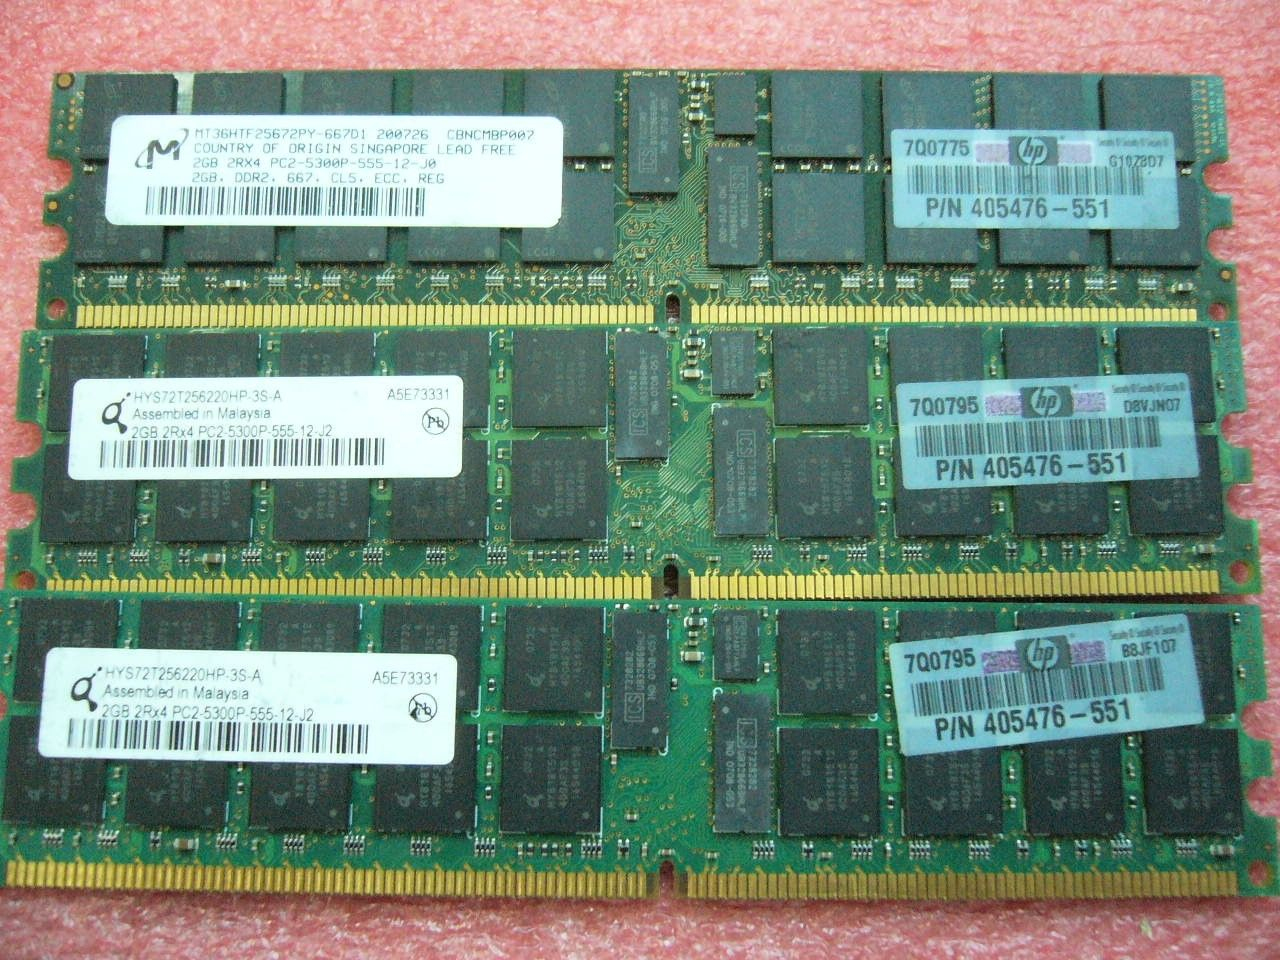 QTY 1x 2GB DDR2 PC2-5300P 2Rx4 ECC Registered Server memory HP PN 405476-551